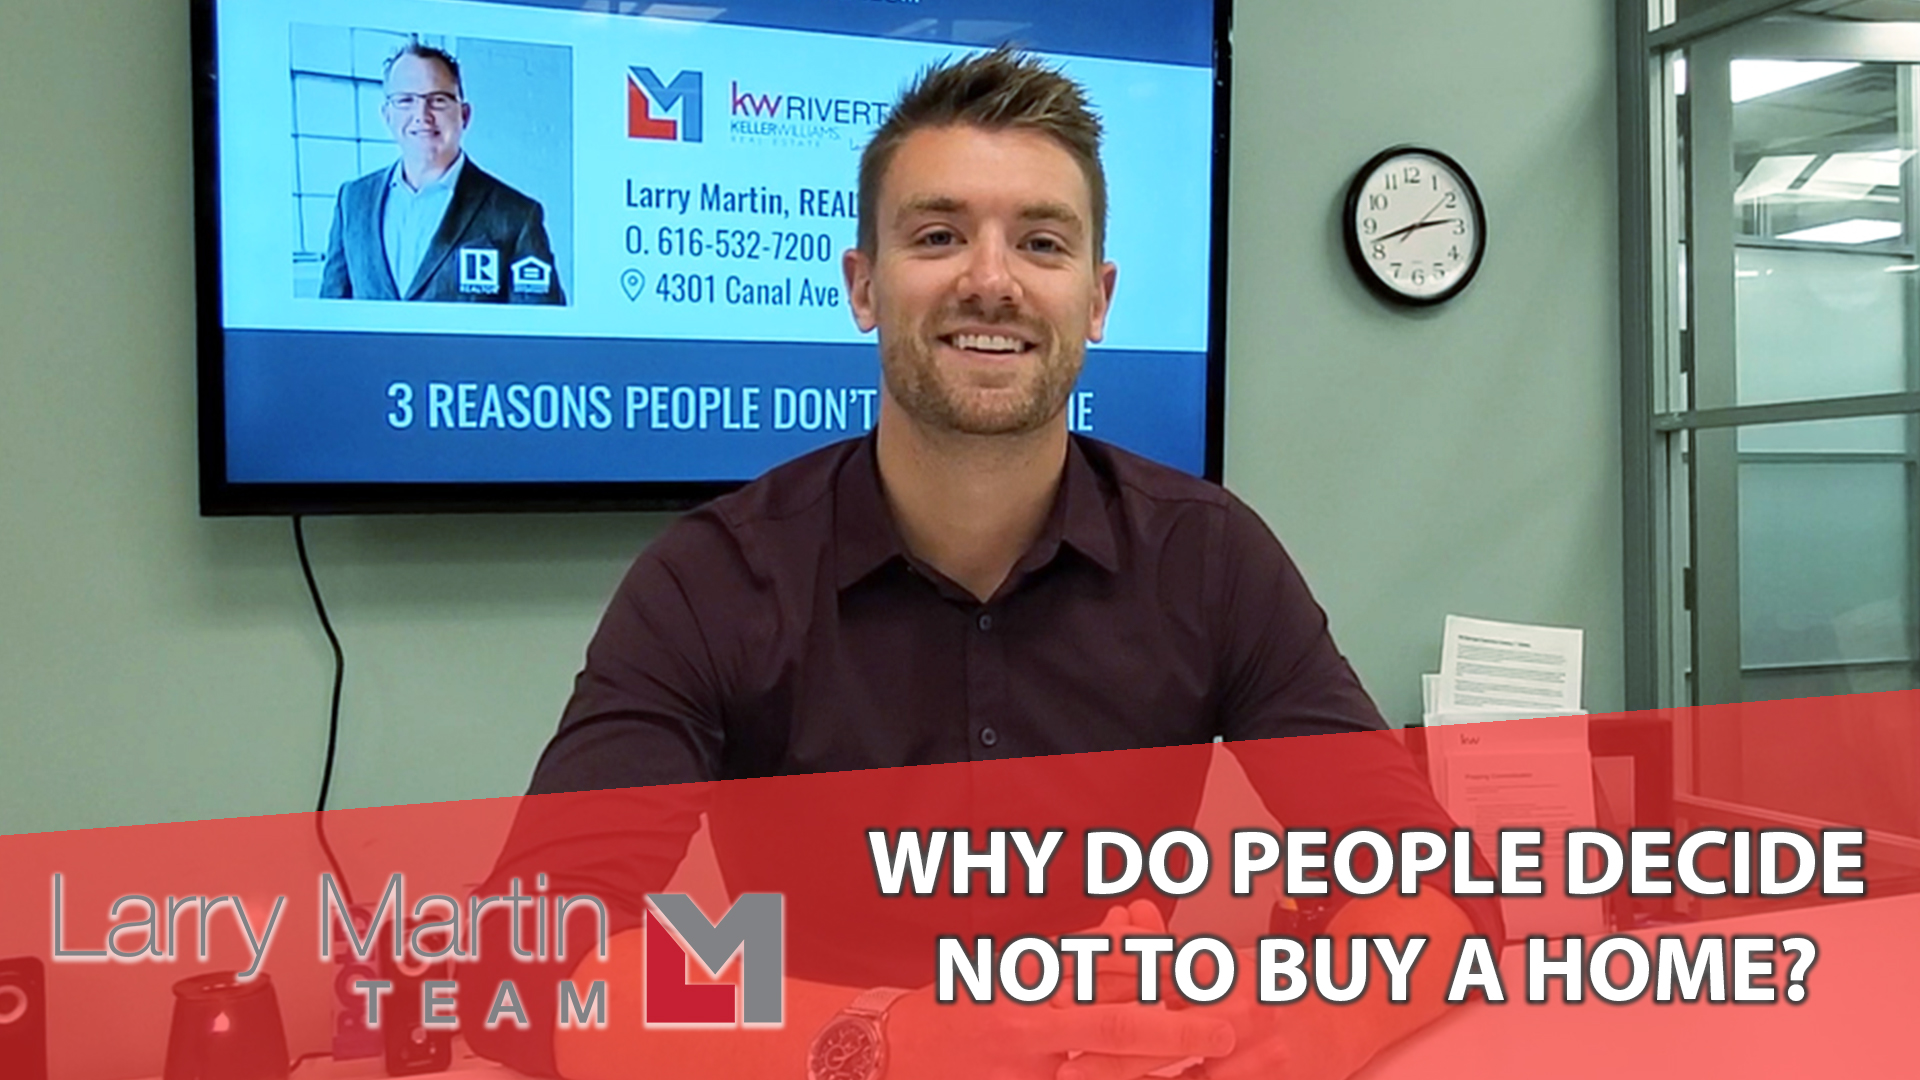 3 Reasons Why People Don't Buy a Home